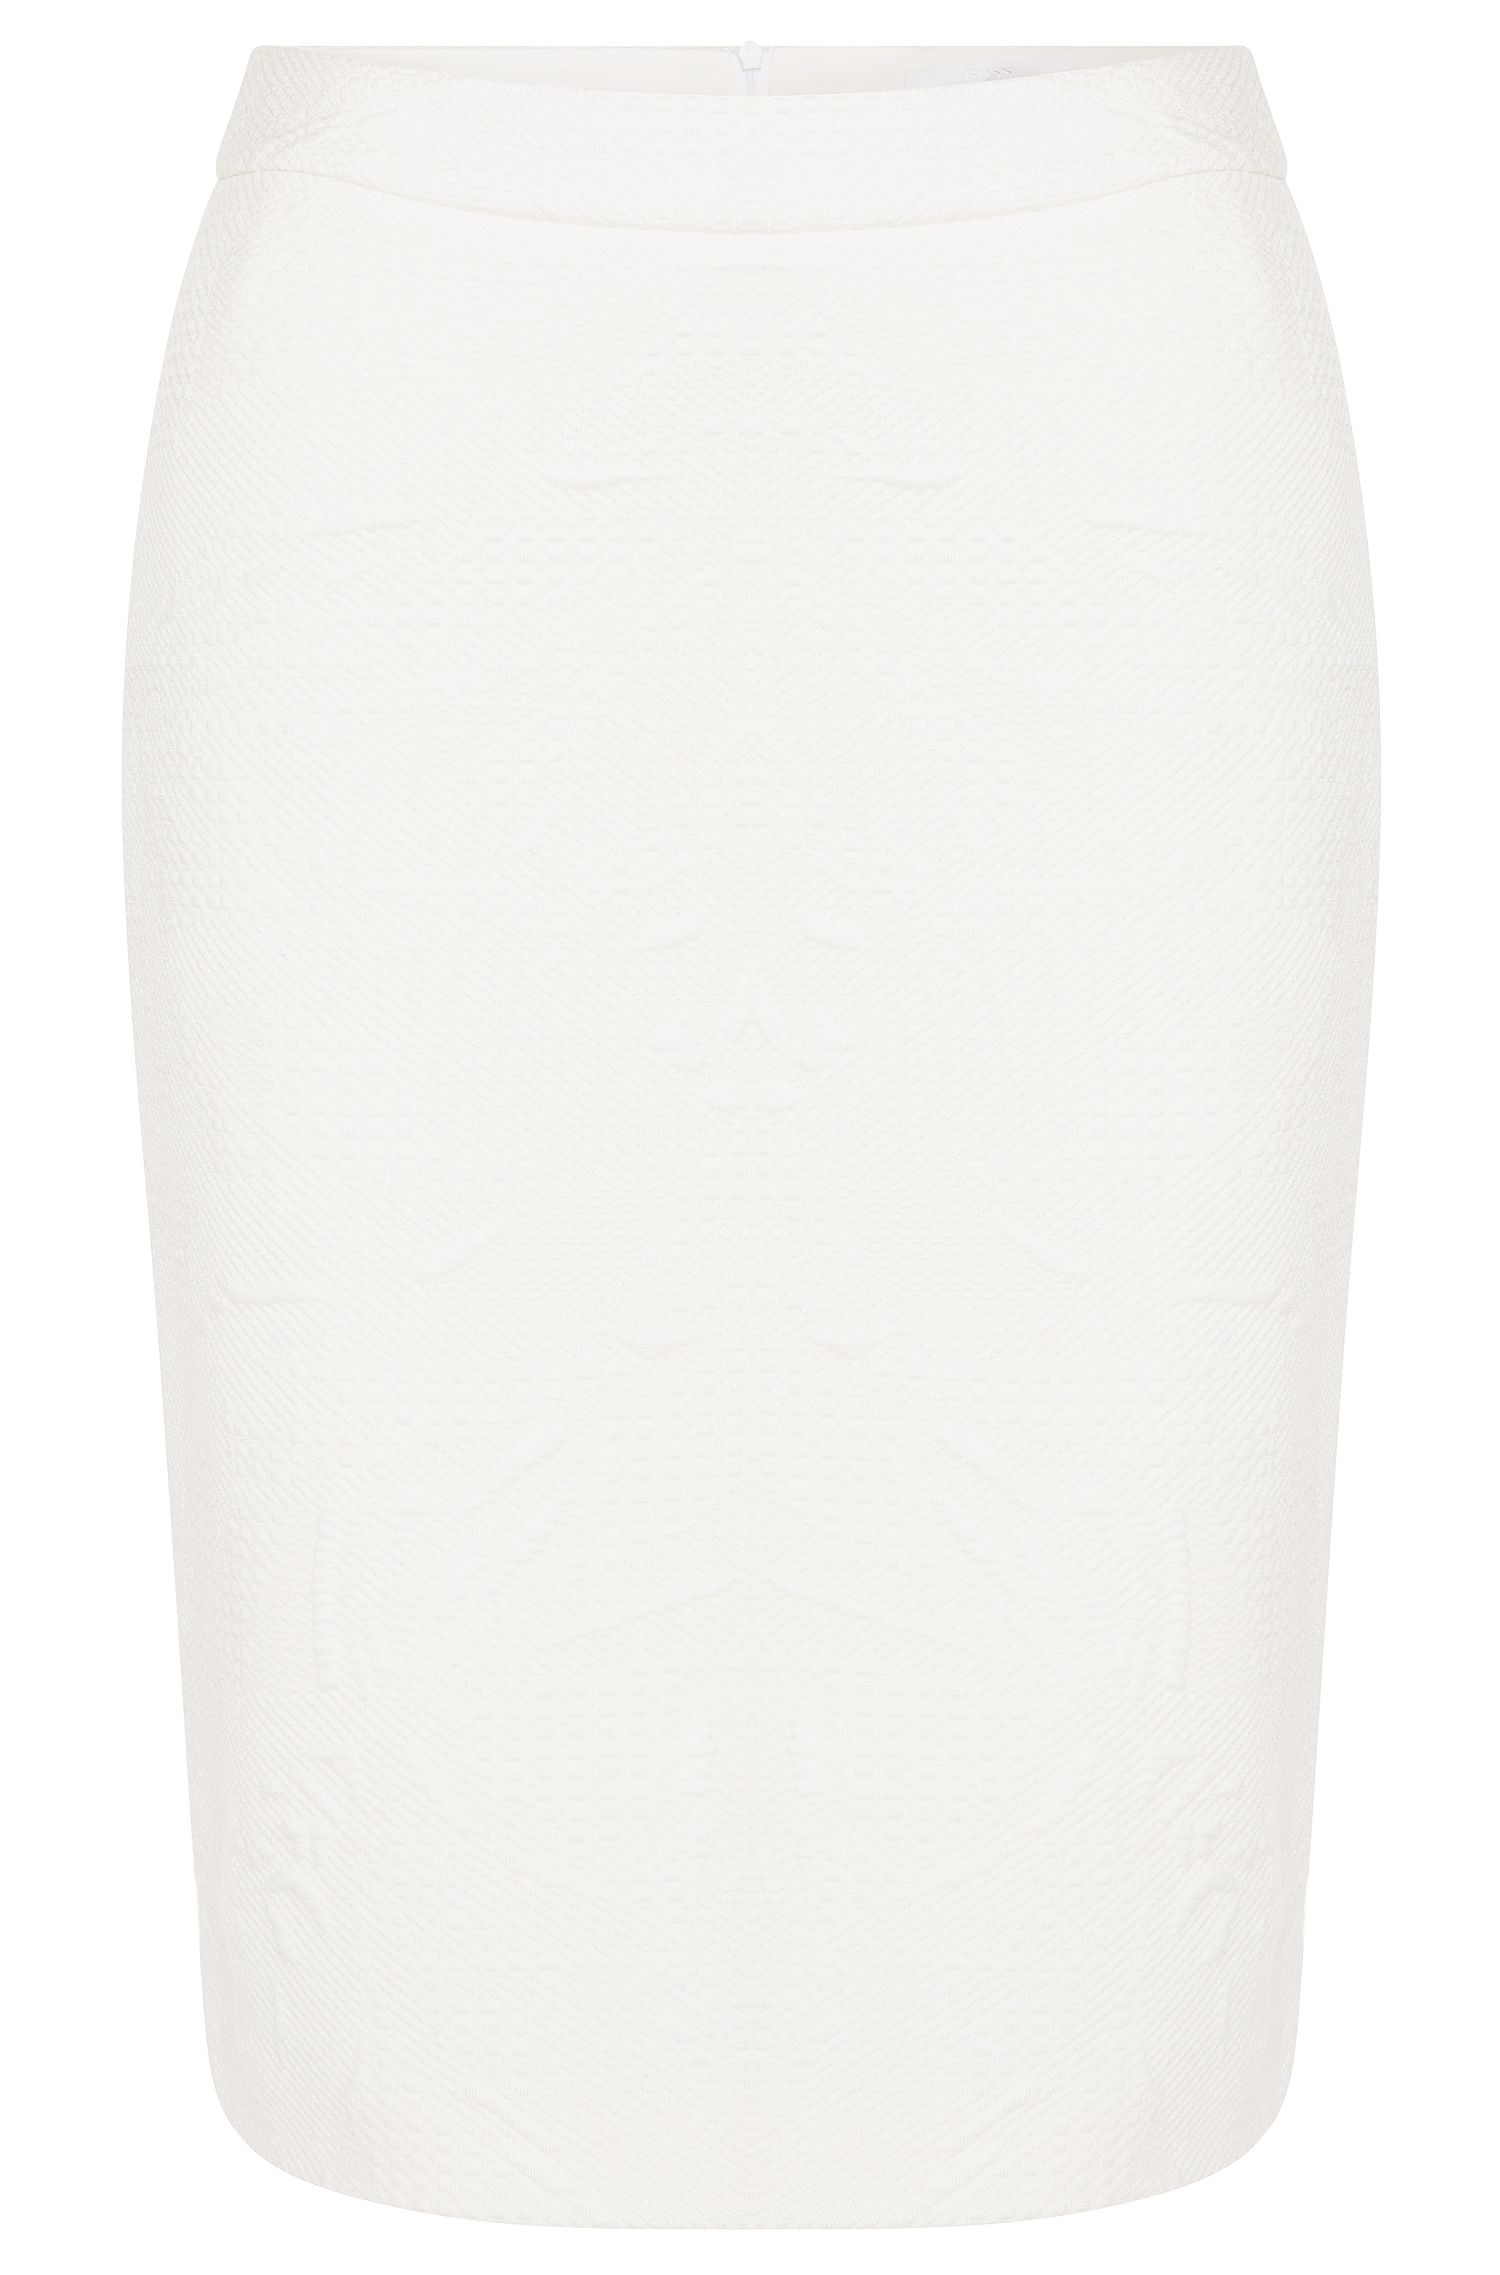 Pencil skirt in textured fabric: 'Miwinna'